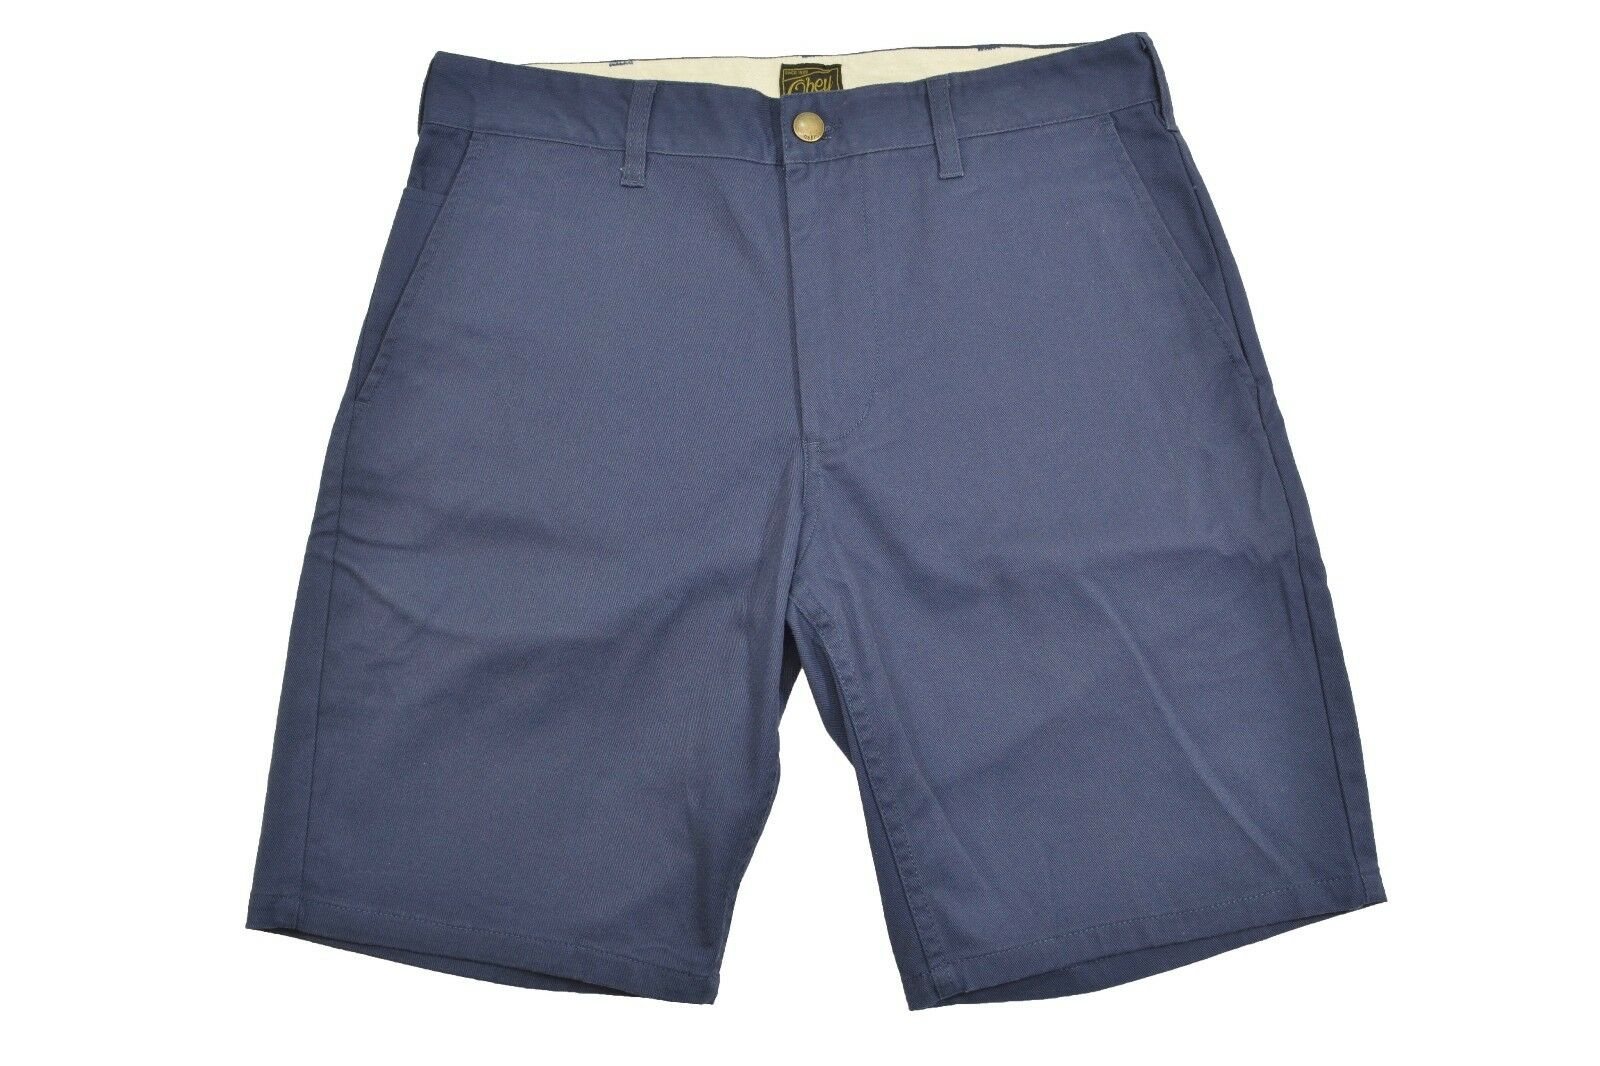 Obey GOOD TIMES Dusty Navy Casual Flat Front Men's Shorts